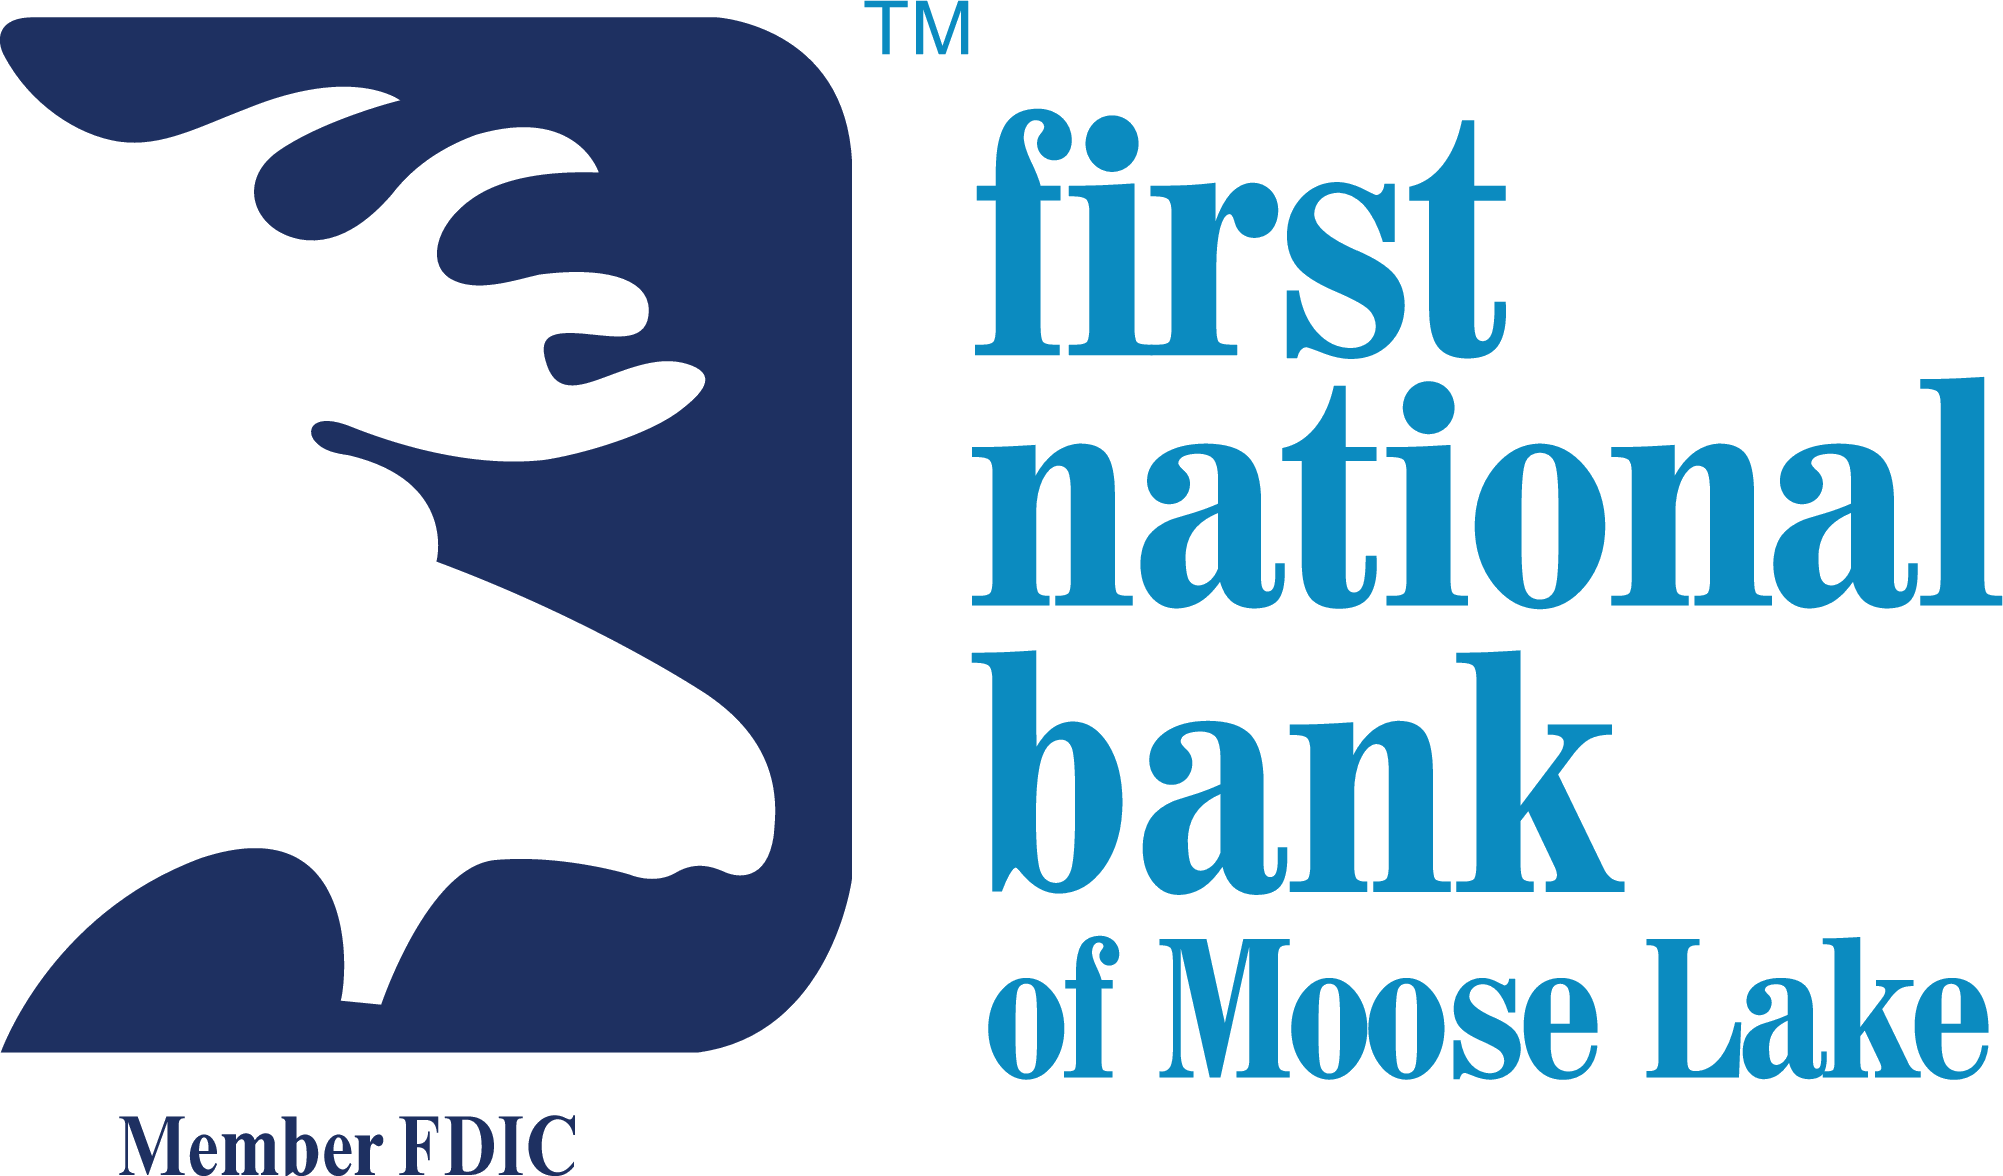 FNB Moose Bank Logo